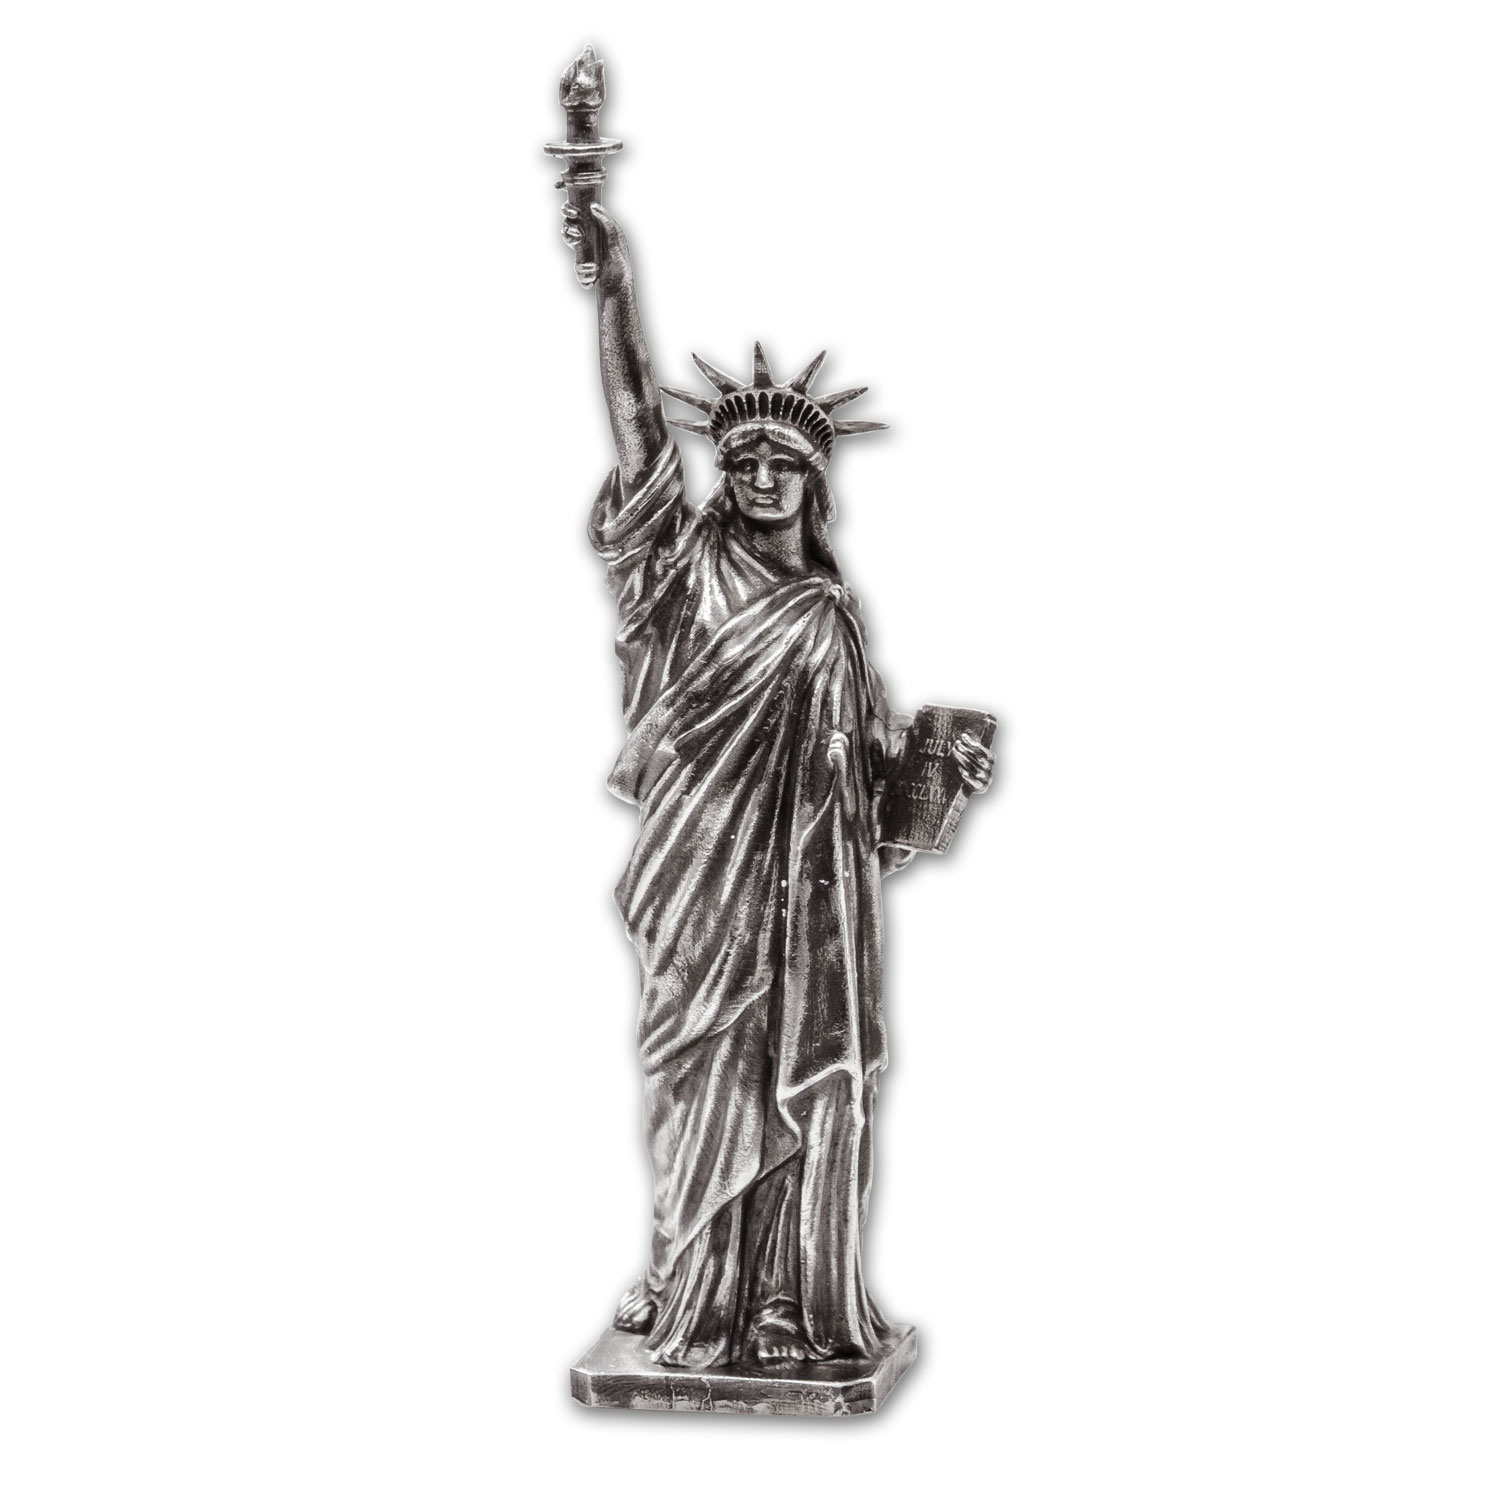 5 oz Silver Antique Statue - American Treasures (Lady Liberty)